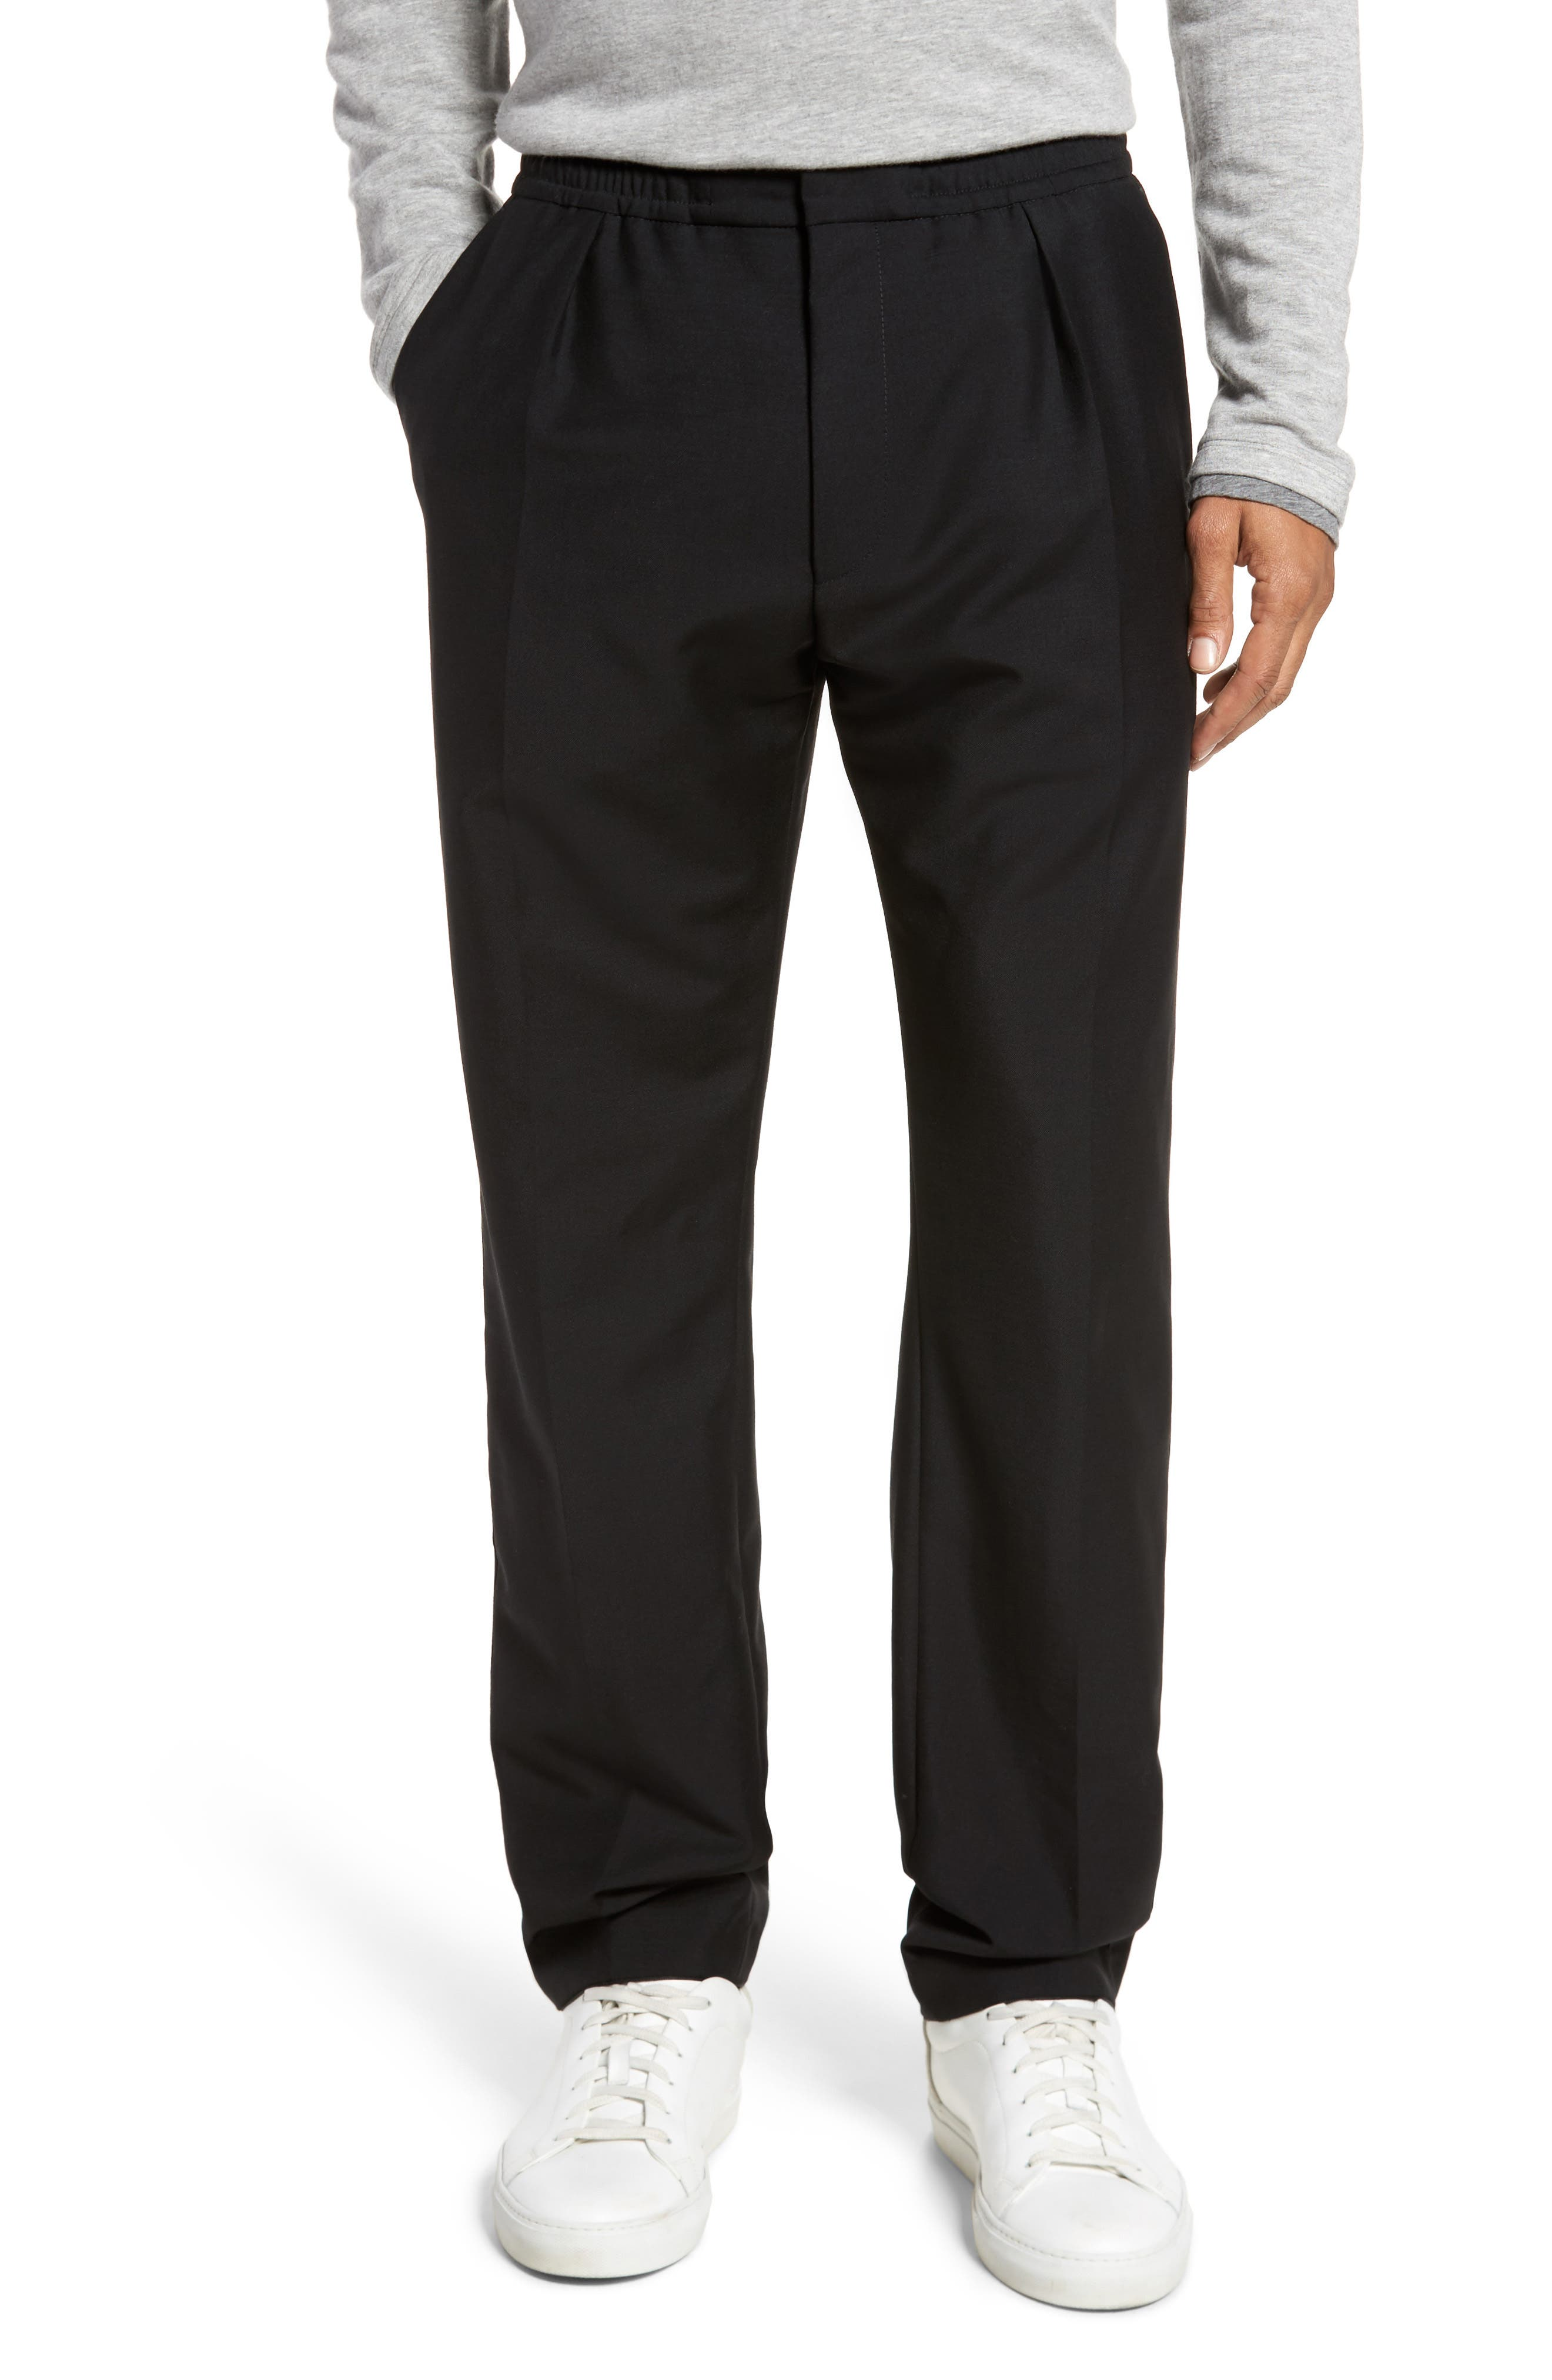 Payton Pleated Solid Wool & Mohair Jogger Trousers,                         Main,                         color, Black